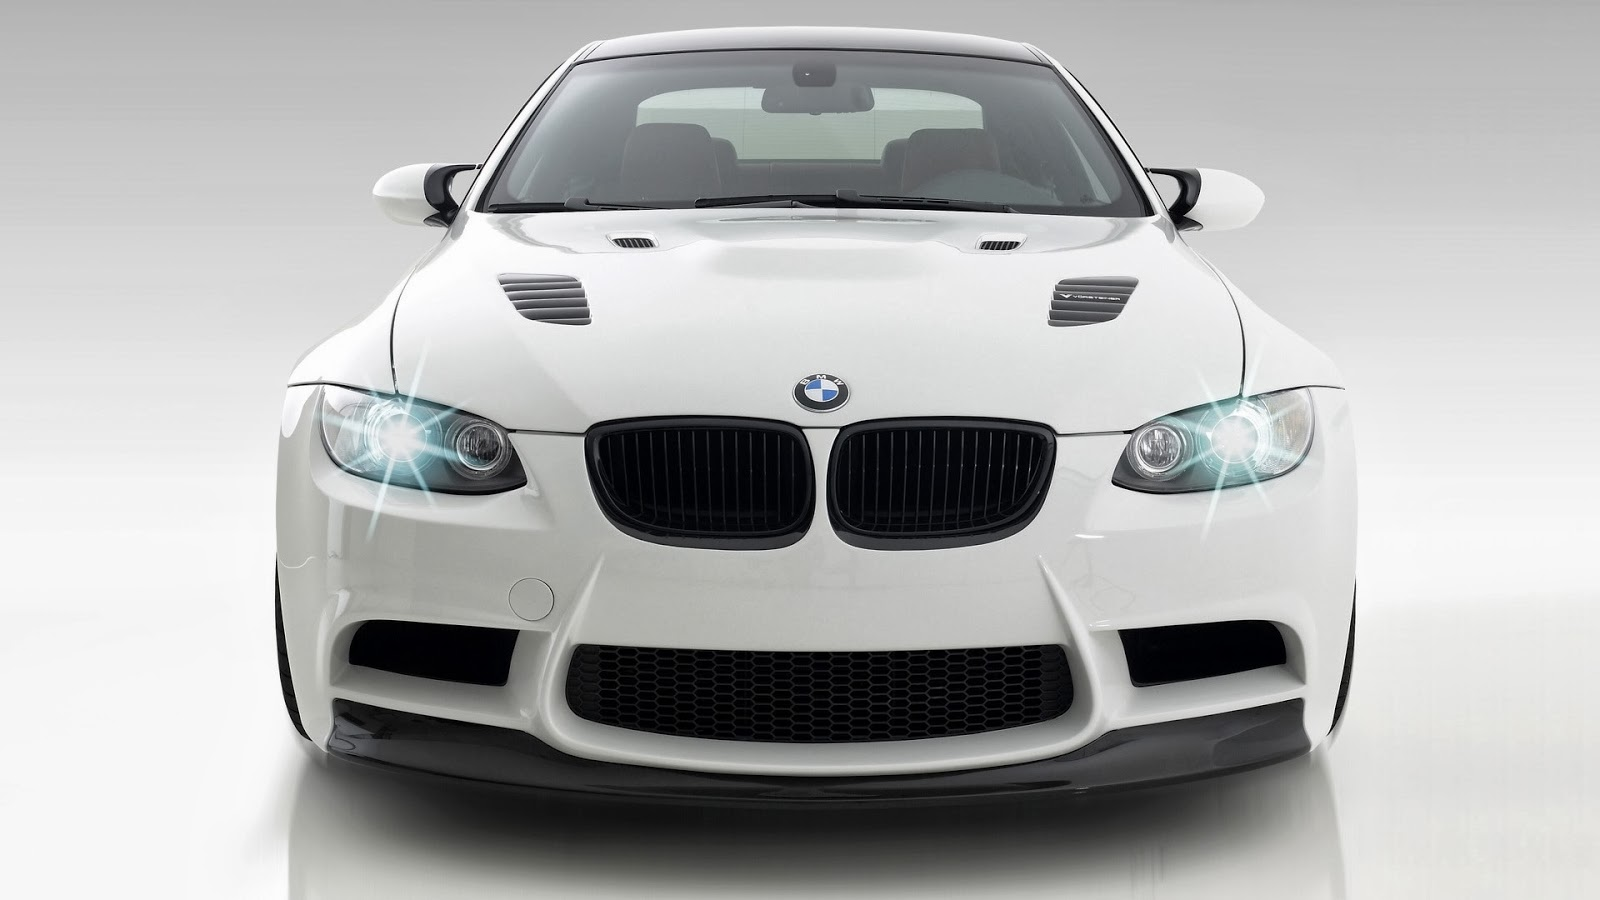 HD BMW Car Wallpapers 1080p Mobile wallpapers 1600x900